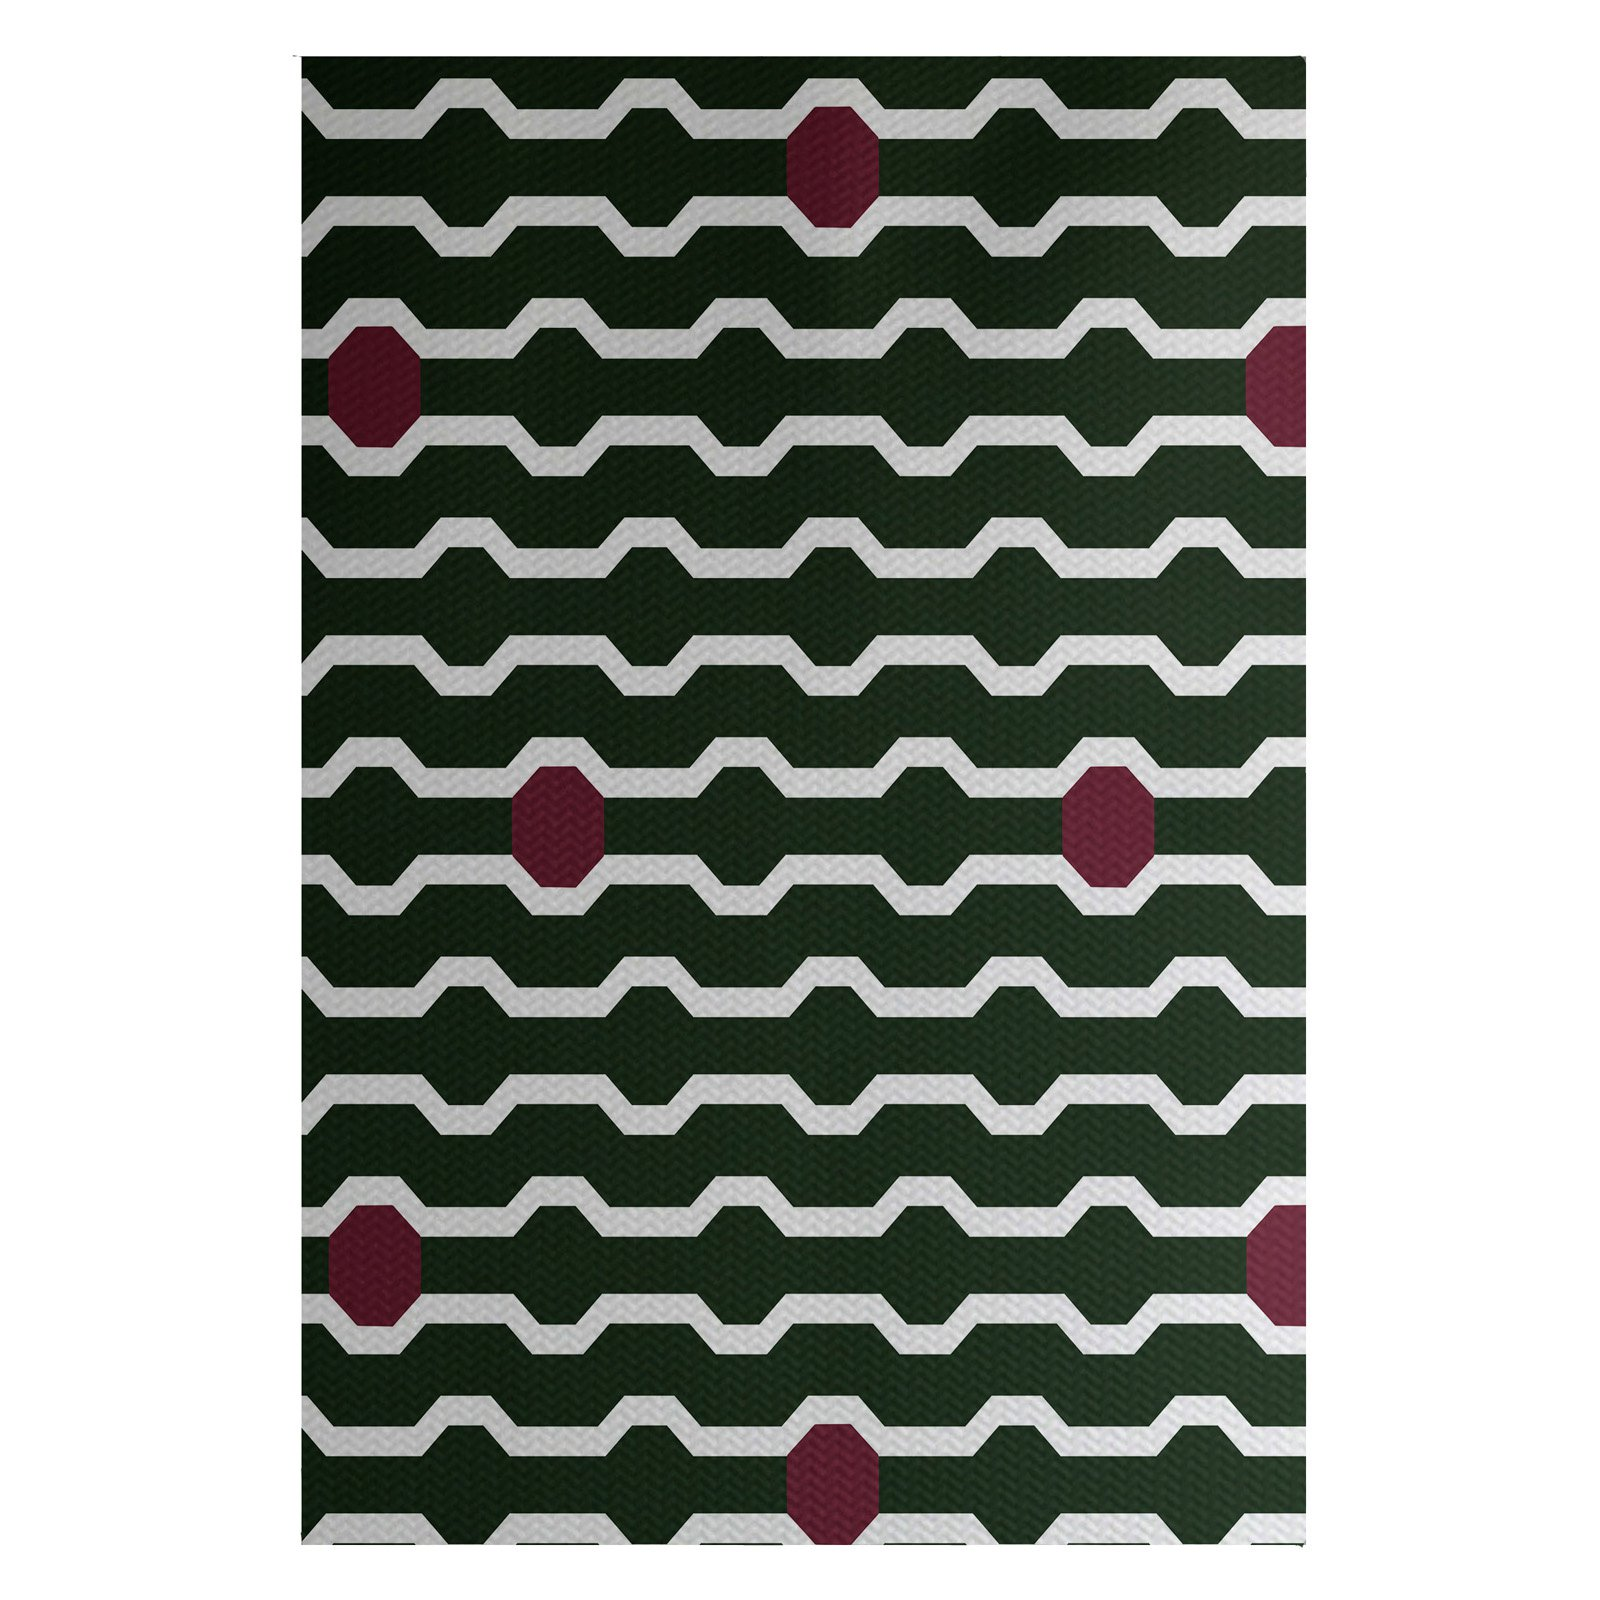 E By Design Nuts And Bolts Indoor Outdoor Area Rug Dark Green Cranberry Indoor Outdoor Area Rugs Area Rugs Outdoor Area Rugs